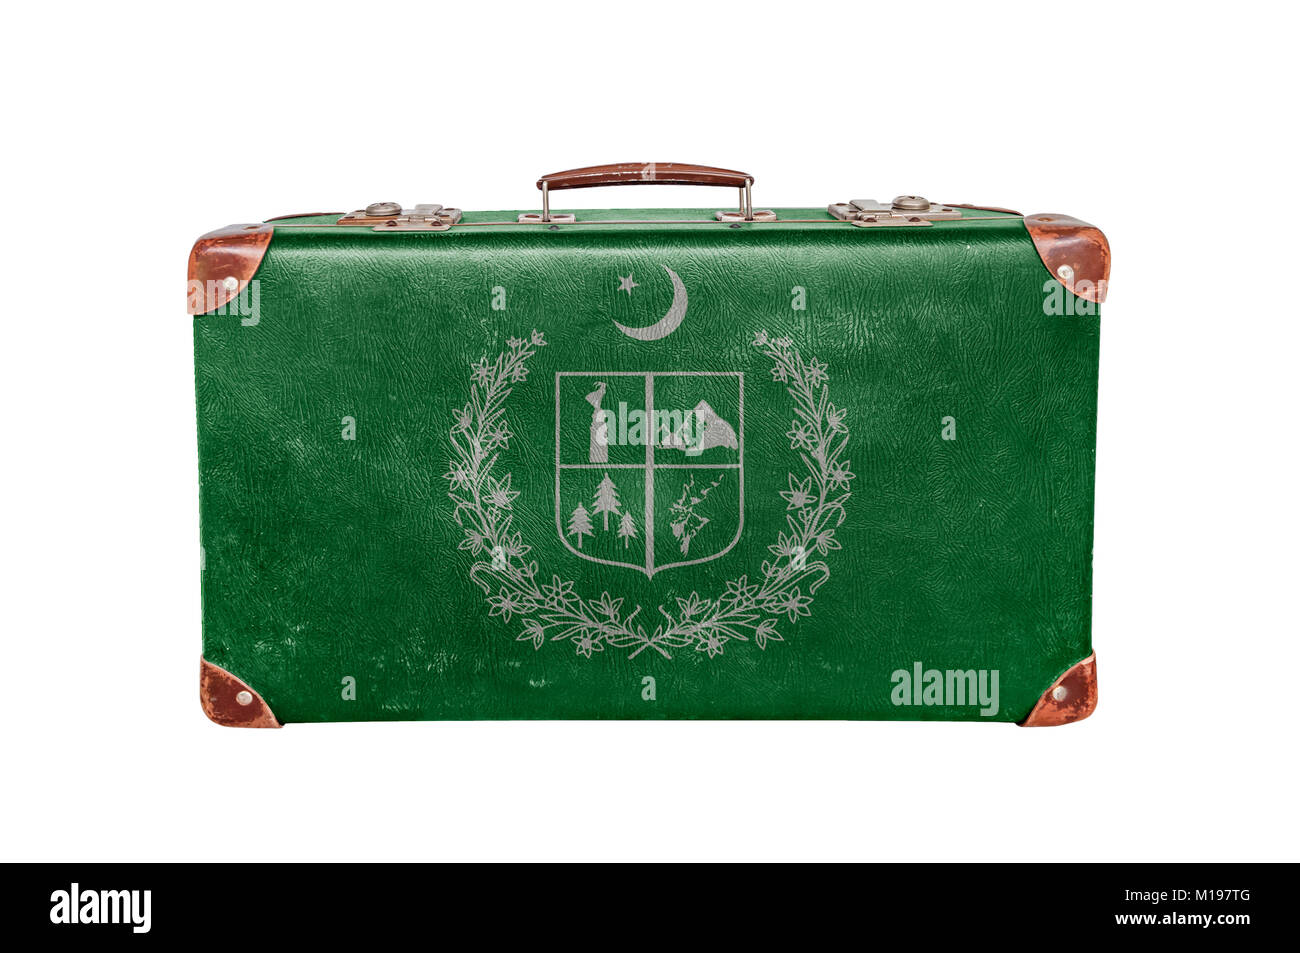 Vintage suitcase with Gilgit Baltistan flag isolated on white background - Stock Image